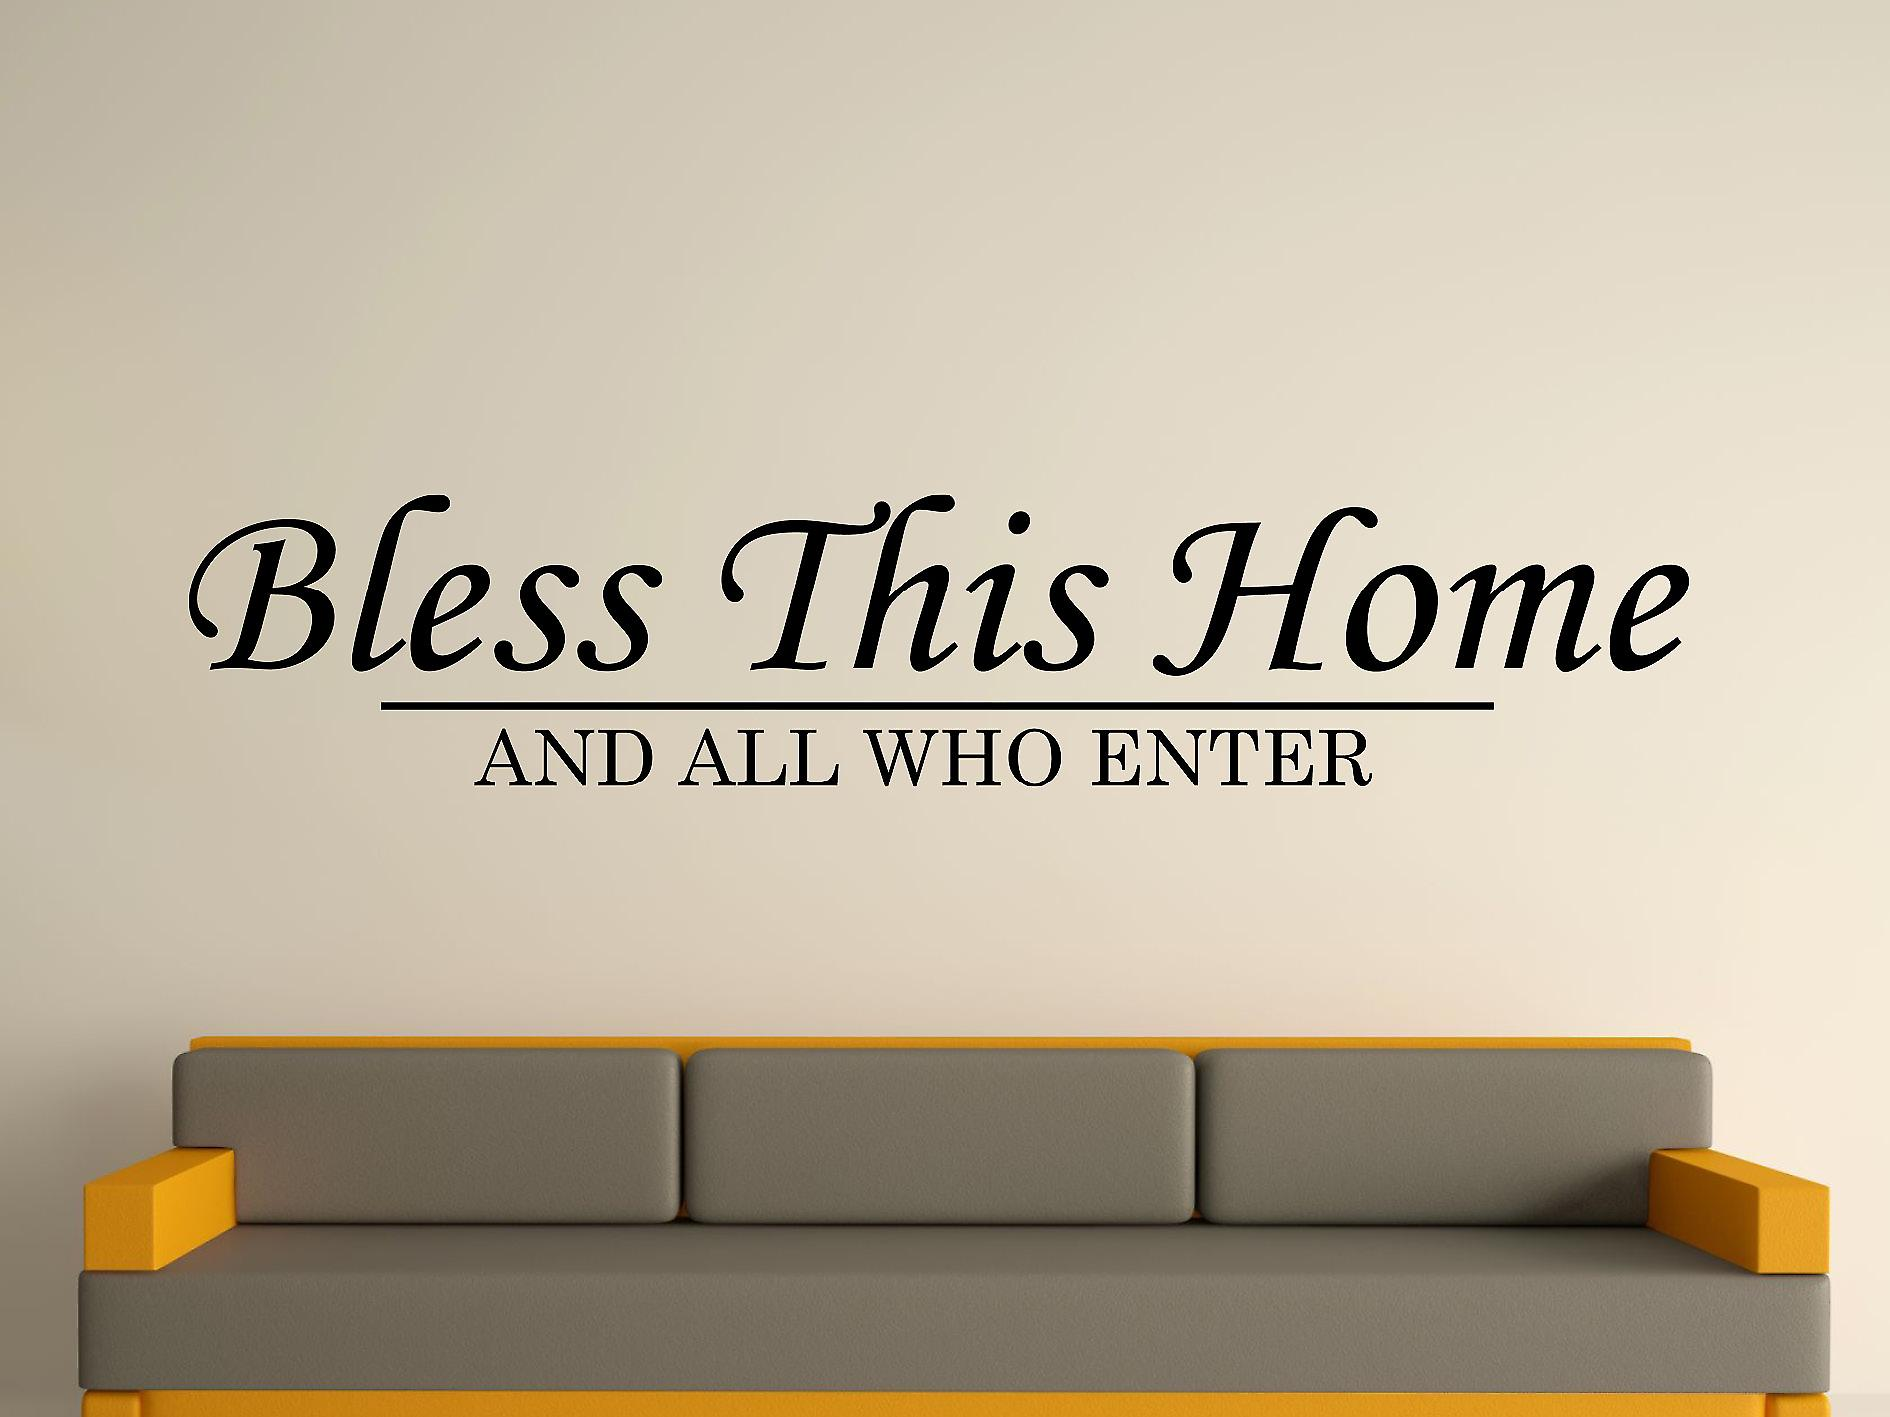 Bless This Home Wall Art Sticker - Black